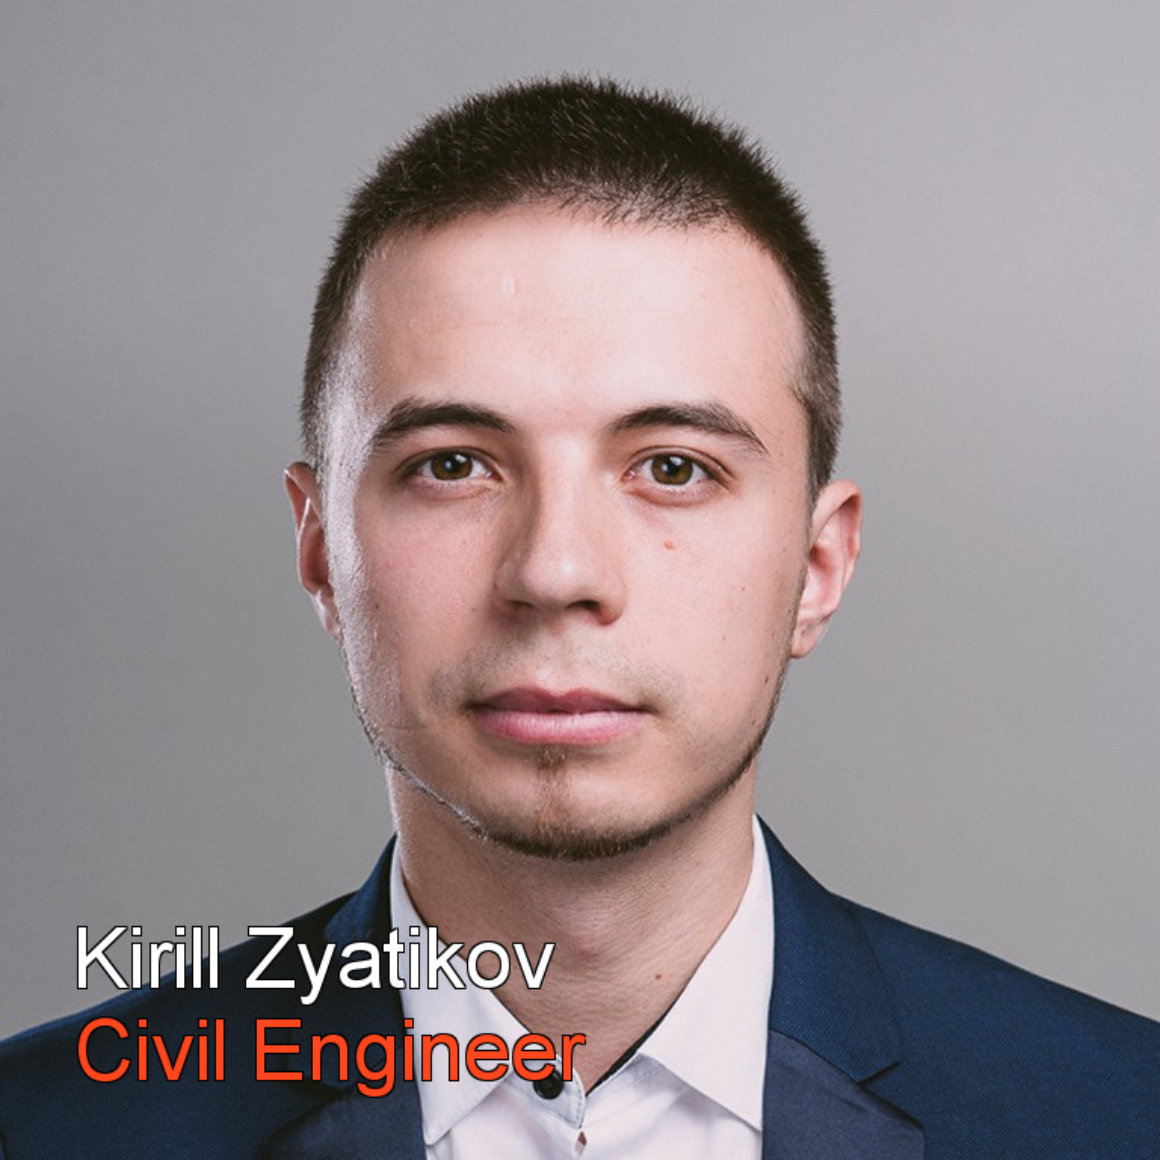 Kirill Zyatikov Civil Engeneer bw